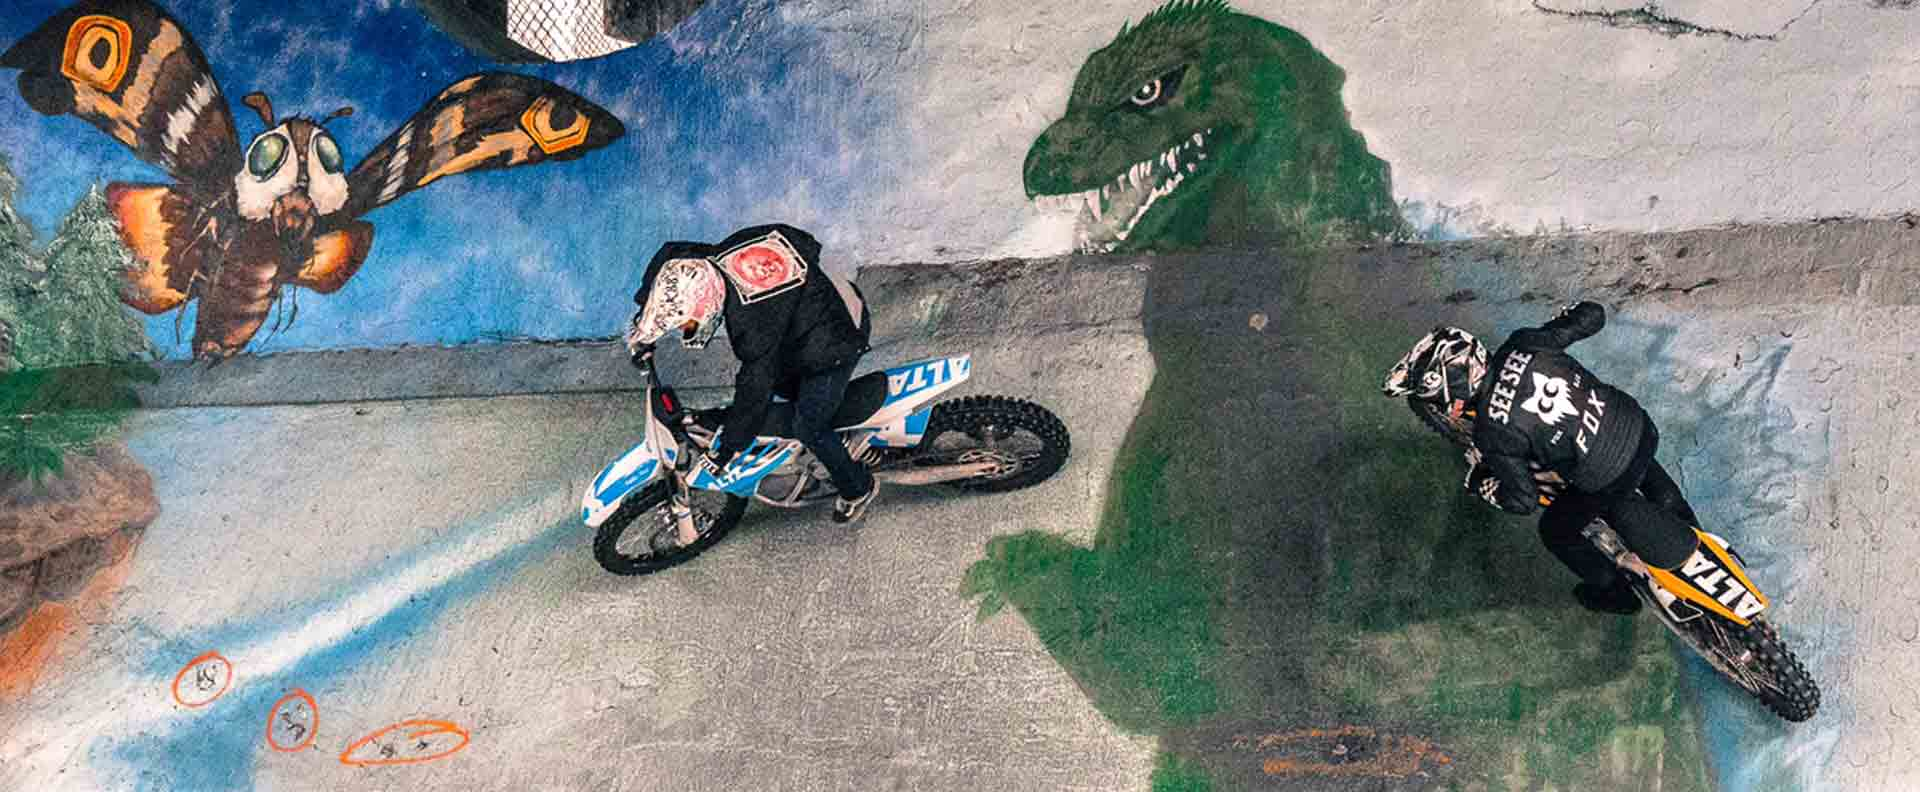 Andy with See See friend Jimmy Hill freestyle motocrosser riding steep slope with Godzilla at Burnside skate park in Portland, Oregon